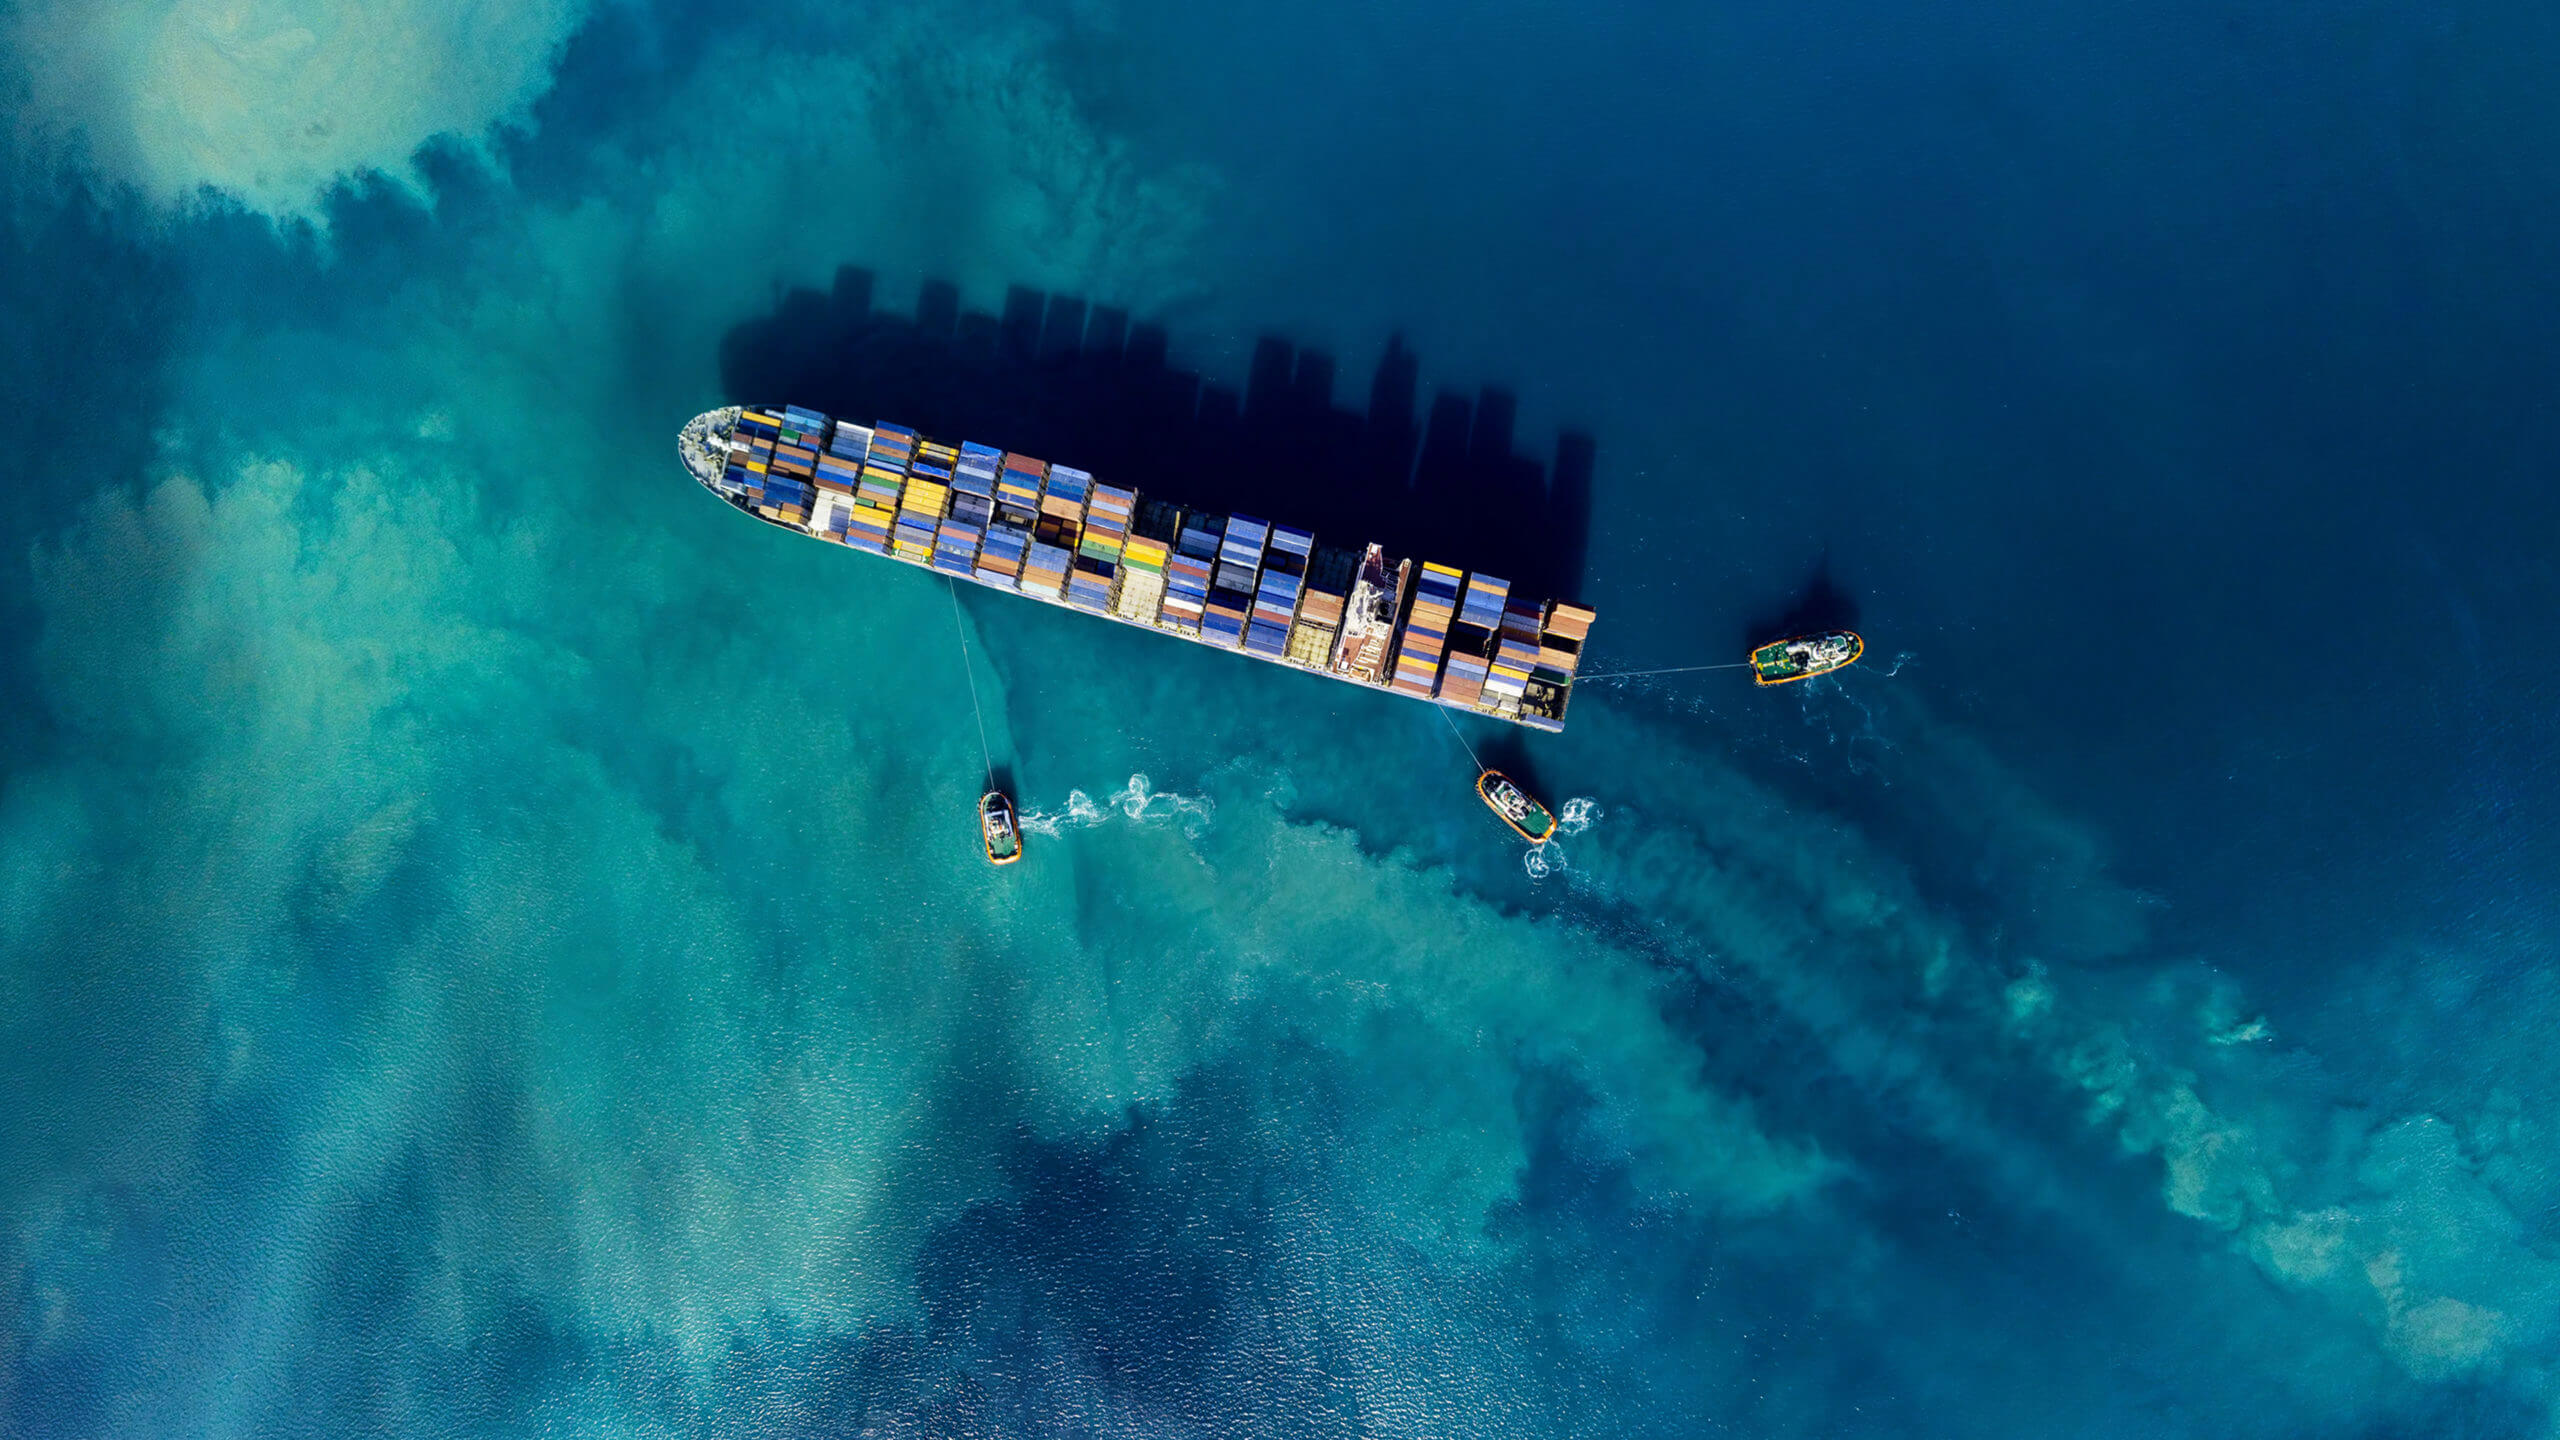 Cargocorp Underwriters digitalise cargo insurance operation with Concirrus